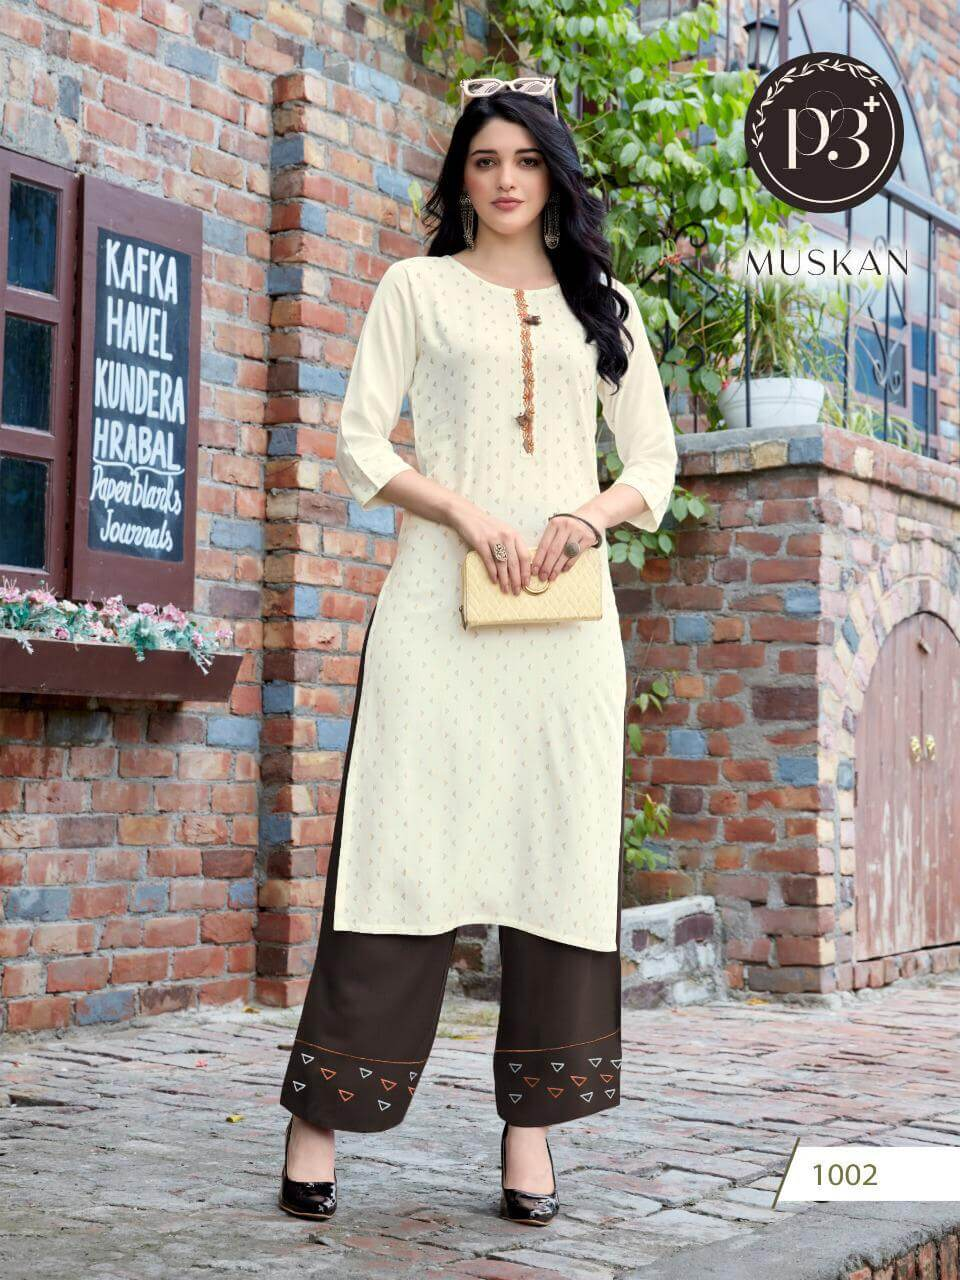 P3 Muskan collection 13